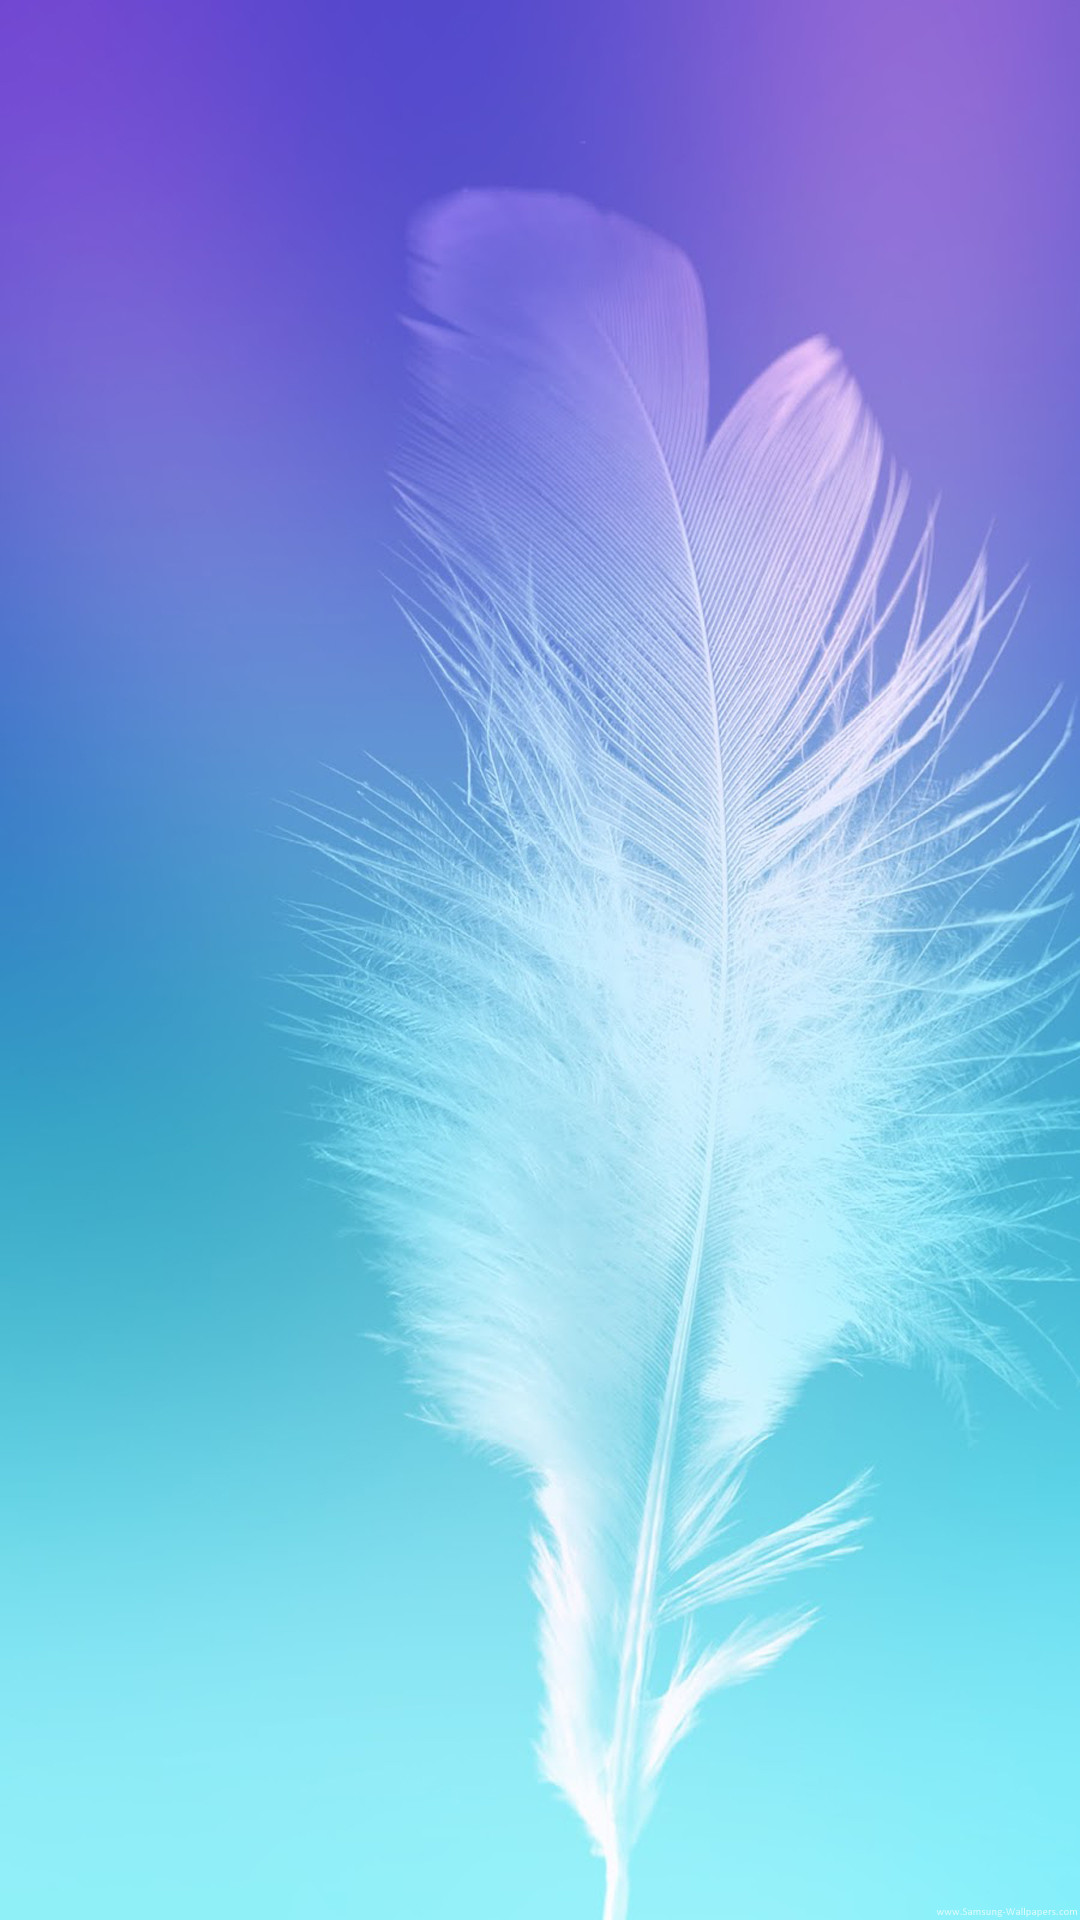 samsung edge 7 wallpaper